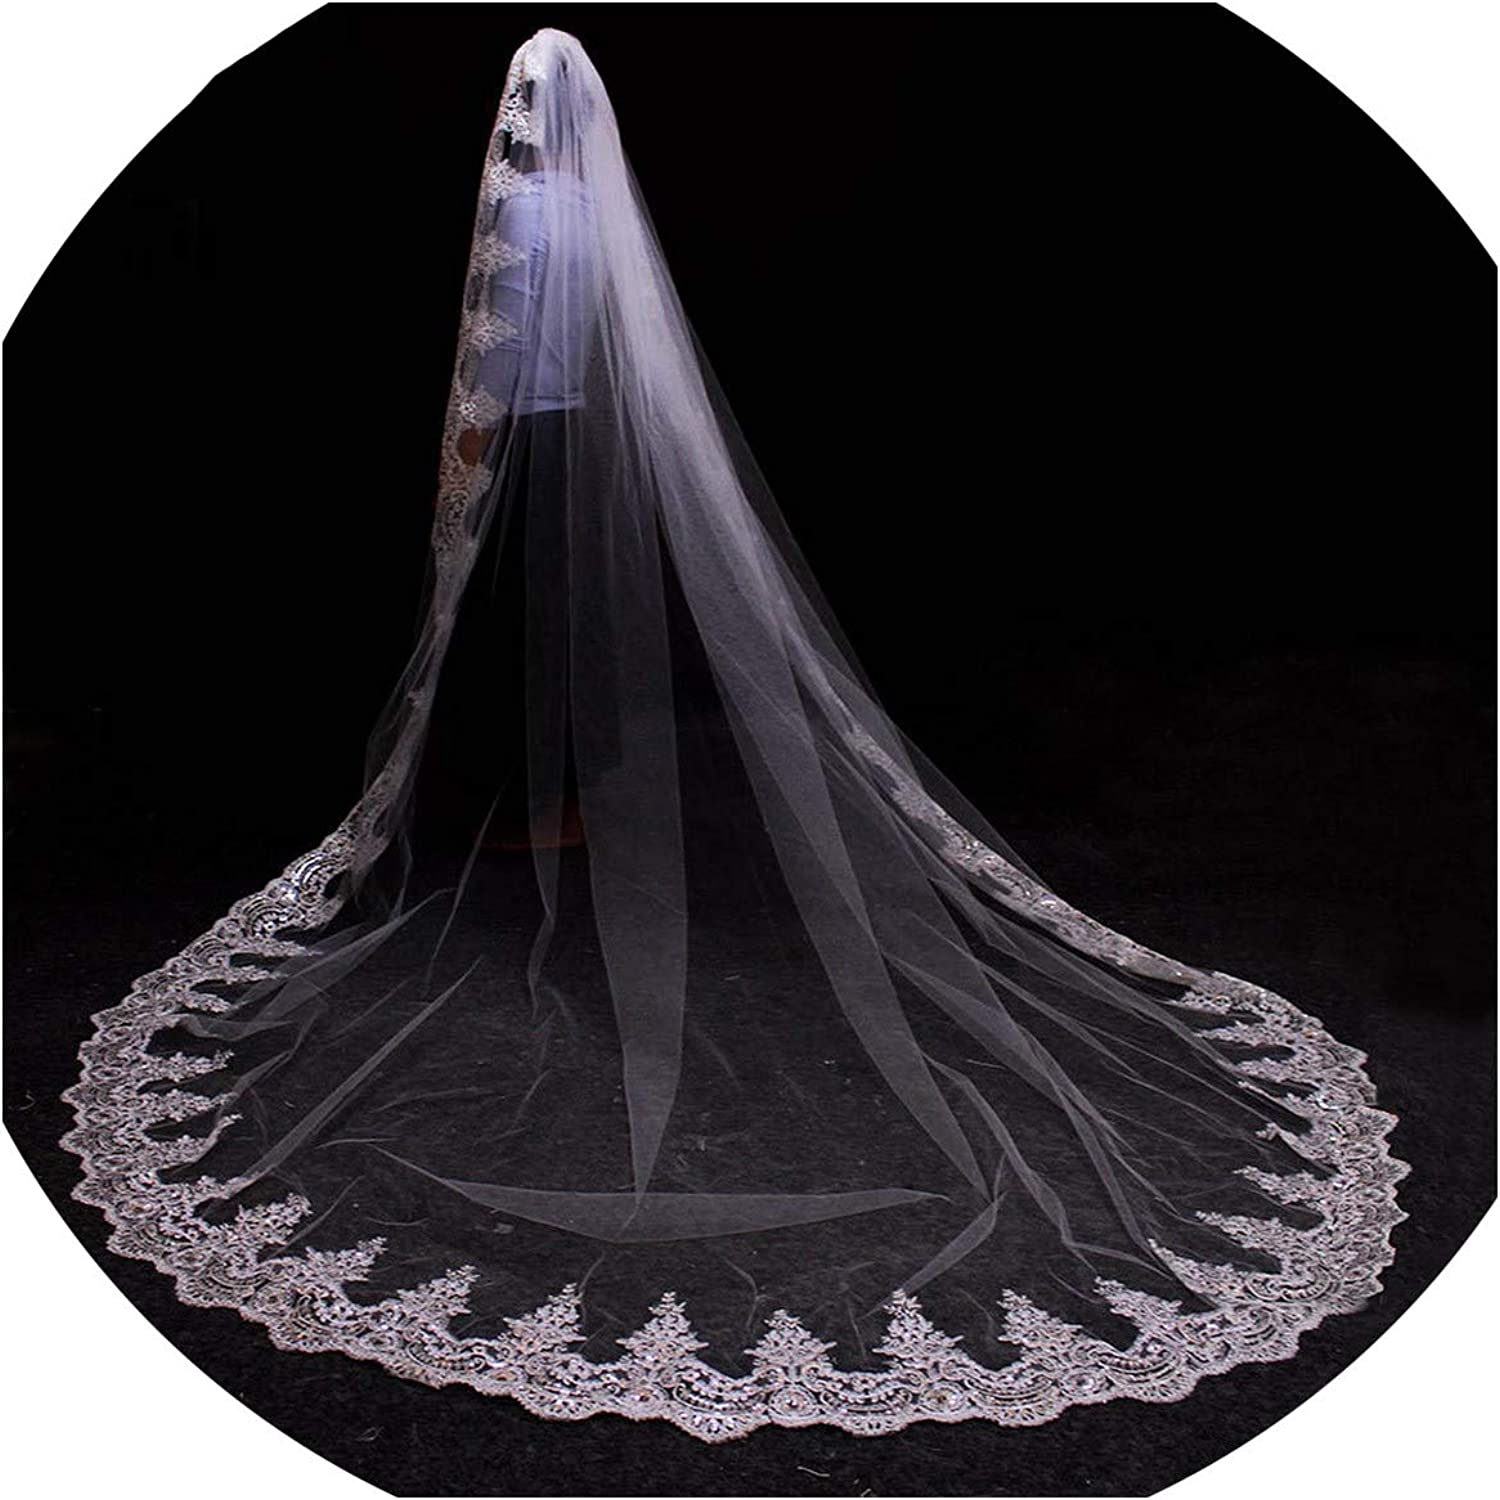 3 Meters White Ivory Cathedral Mantilla Wedding Veils Long Lace Edge Bridal Veil with Comb Wedding Accessories Bride,Ivory,300cm